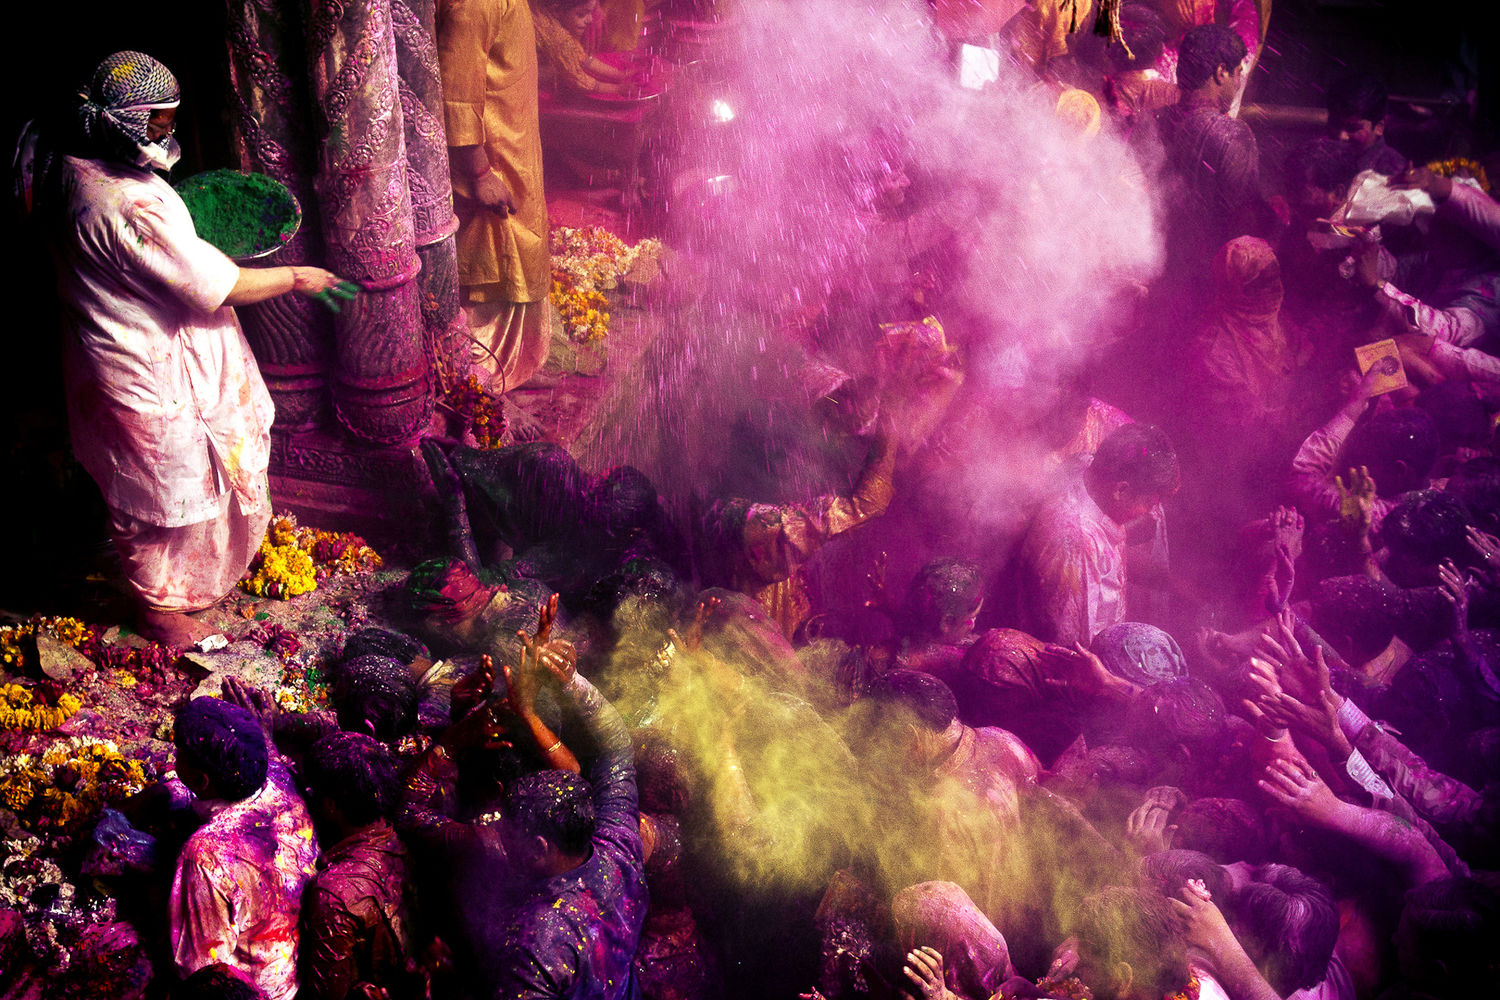 Indian pilgrims celebrate colours on the occasion of holi, festival of colours in Vrindavan, in Mathura District, Uttar Pradesh India.